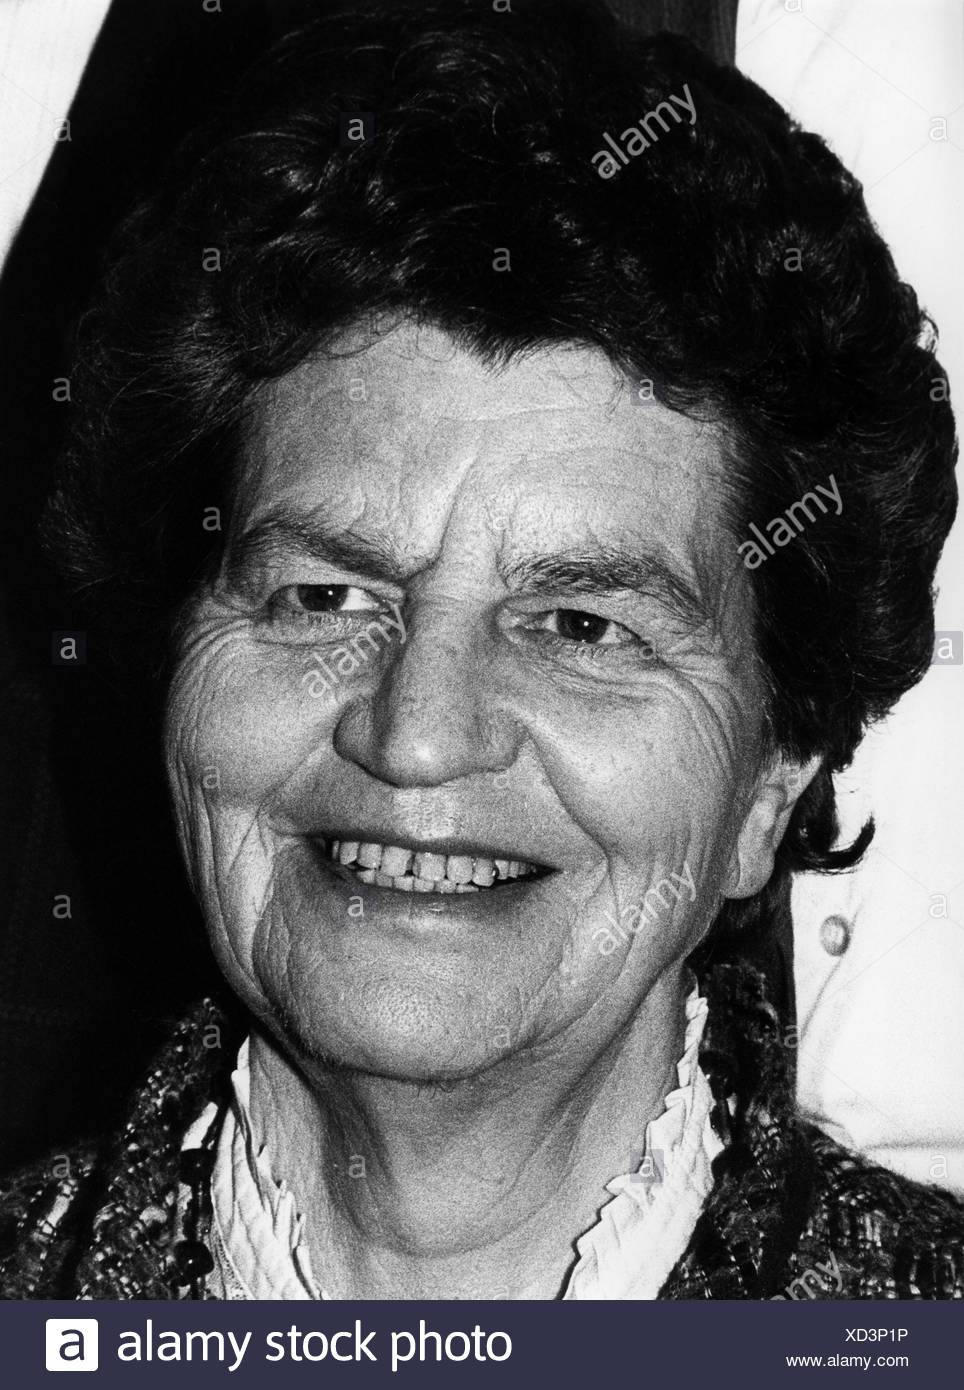 Funcke, Liselotte, 20.7.1918 - 2.8.2012, German politician (FDP), Federal Commissioner for Foreigners, portrait, Hanover, fair, 17.4.1985, , Additional-Rights-Clearances-NA - Stock Image